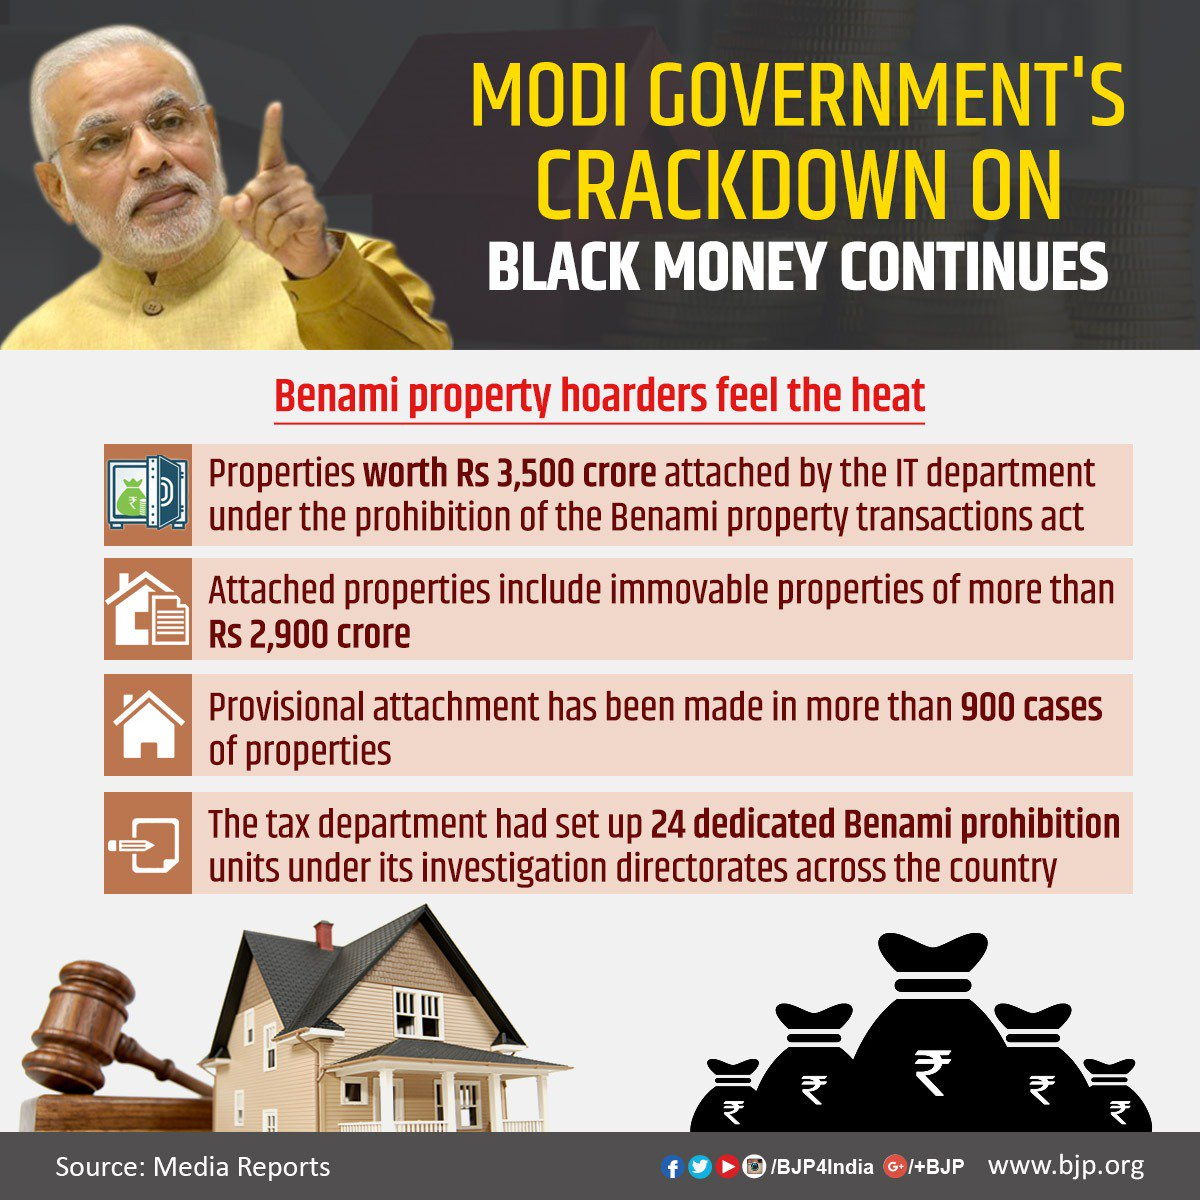 Modi government's crackdown on #BlackMoney continues, Benami property hoarders feel the heat now!